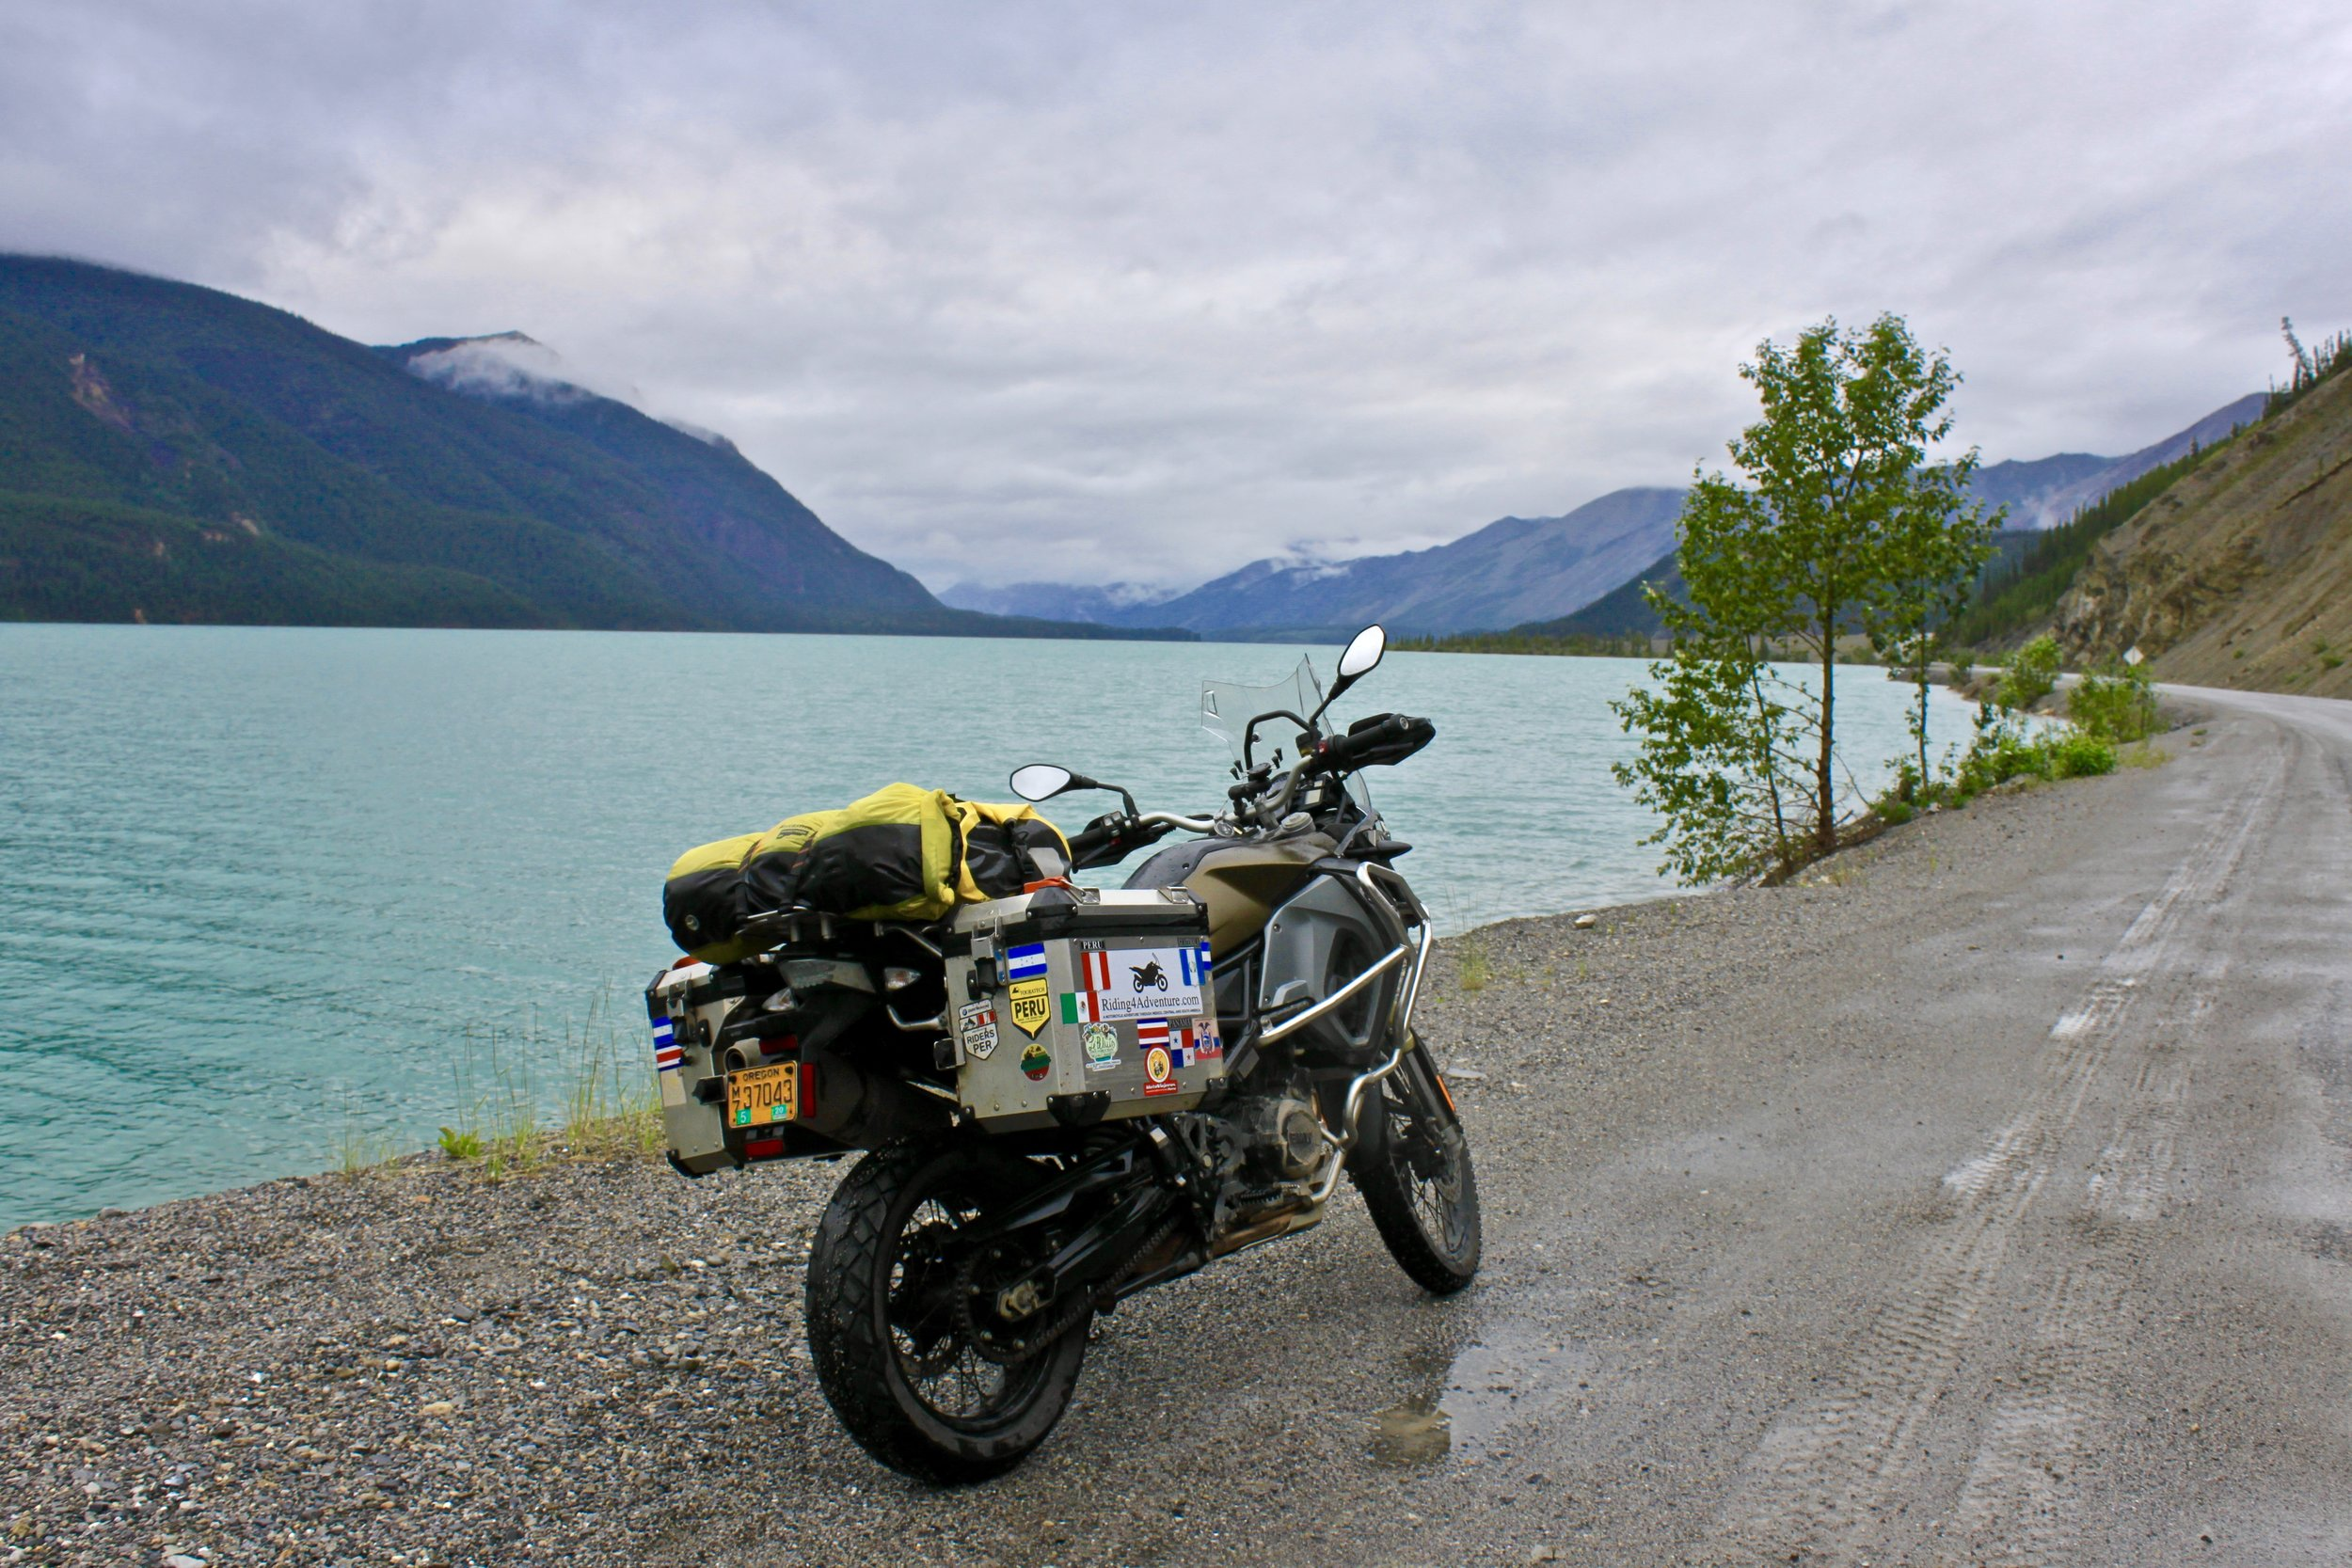 On the road to Liard River Hot Springs.